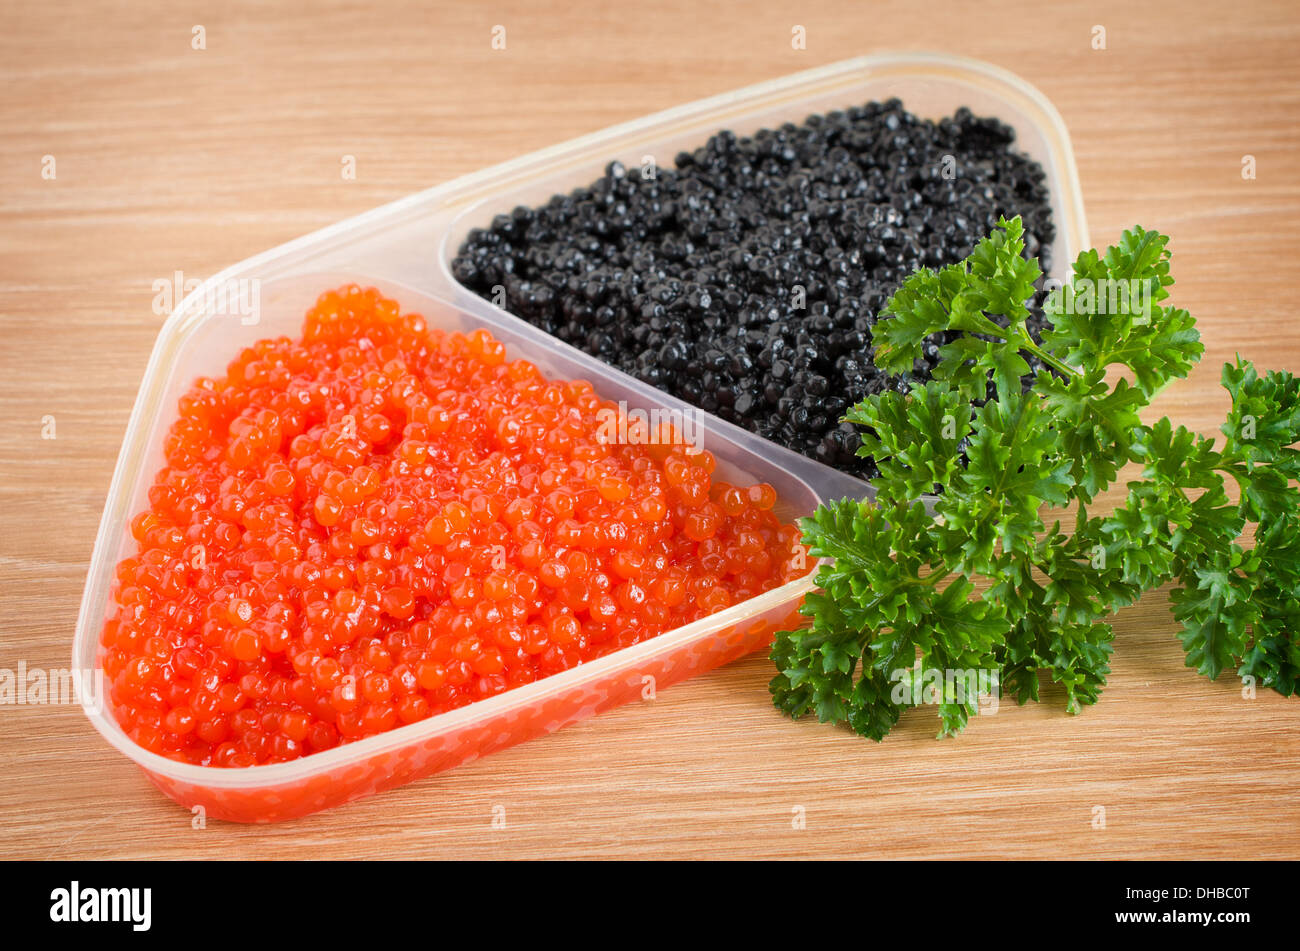 red and black caviar is in a serving plate - Stock Image